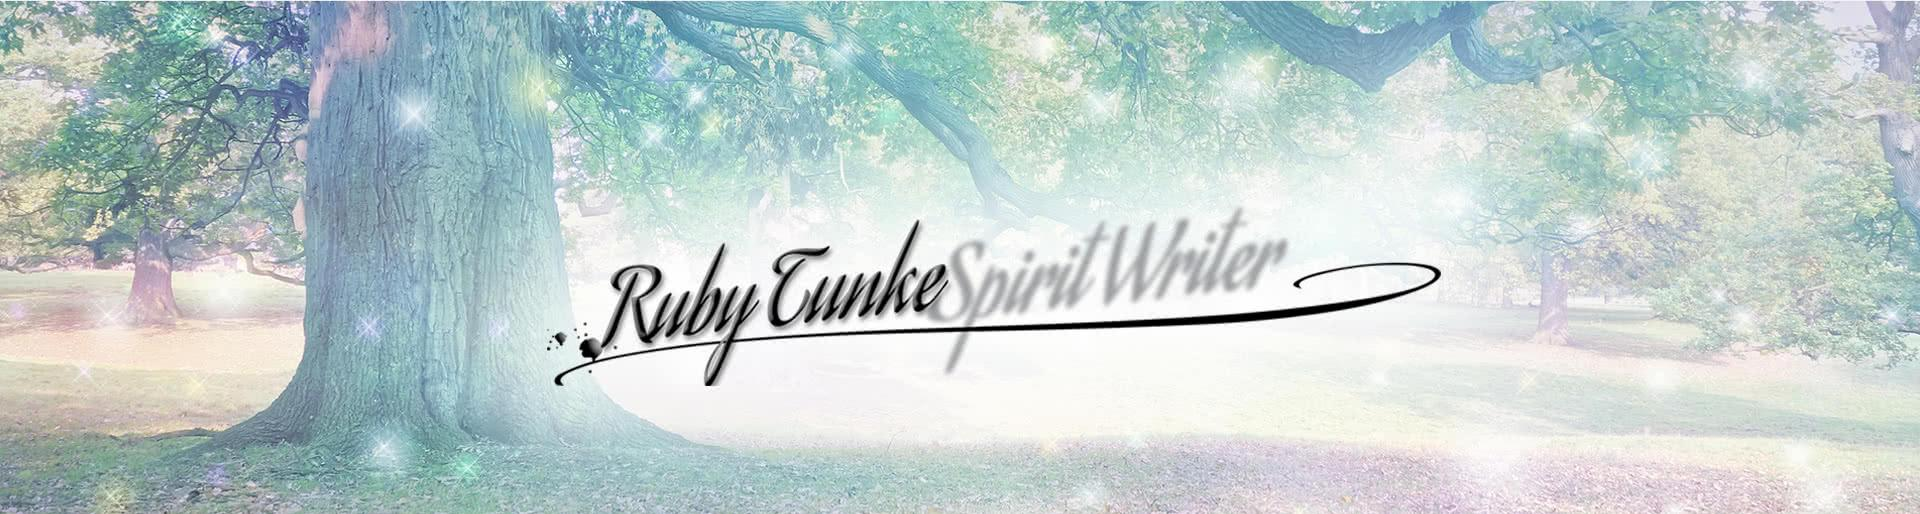 Ruby Tunke Spirit Writer